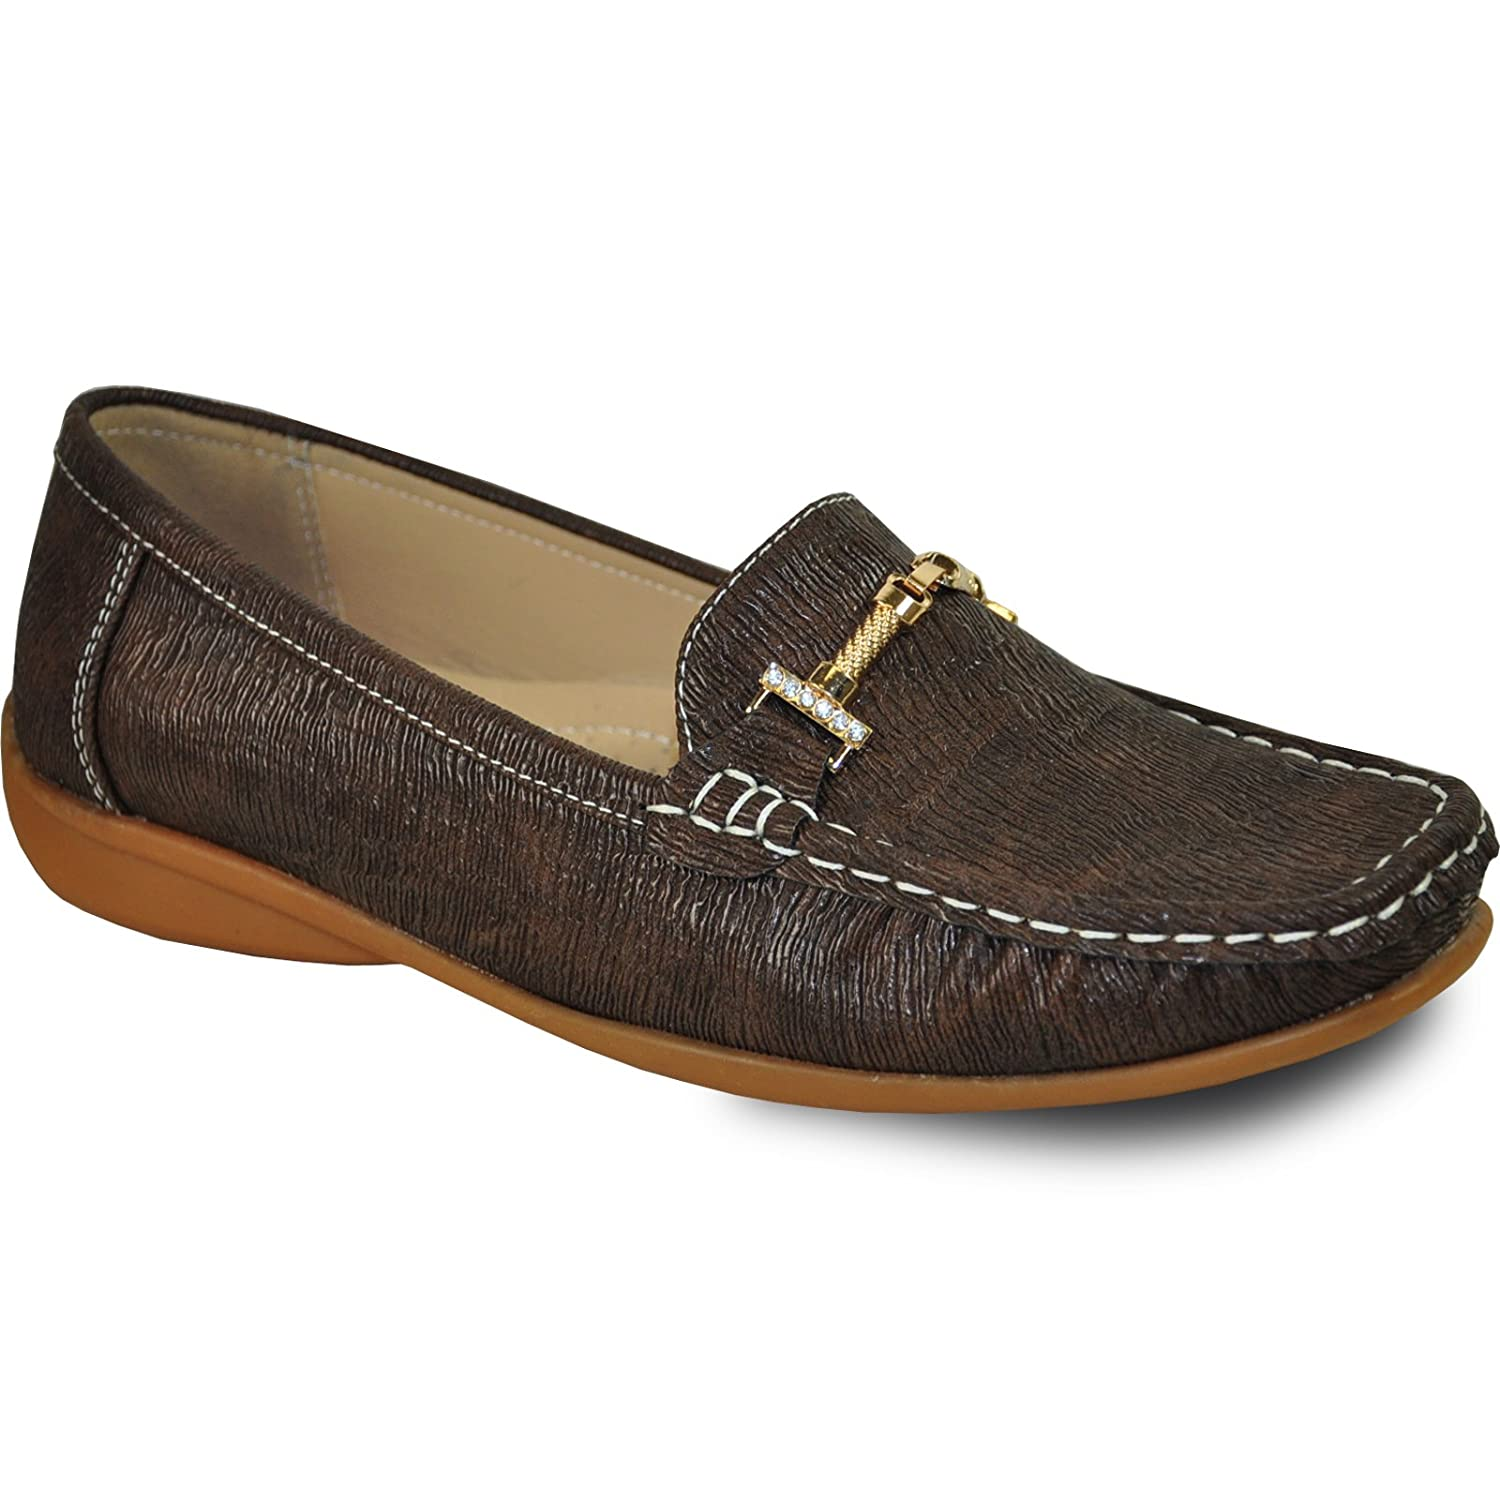 KOZI Women Comfort Shoe OY6284_BROWN with a Round Square Toe